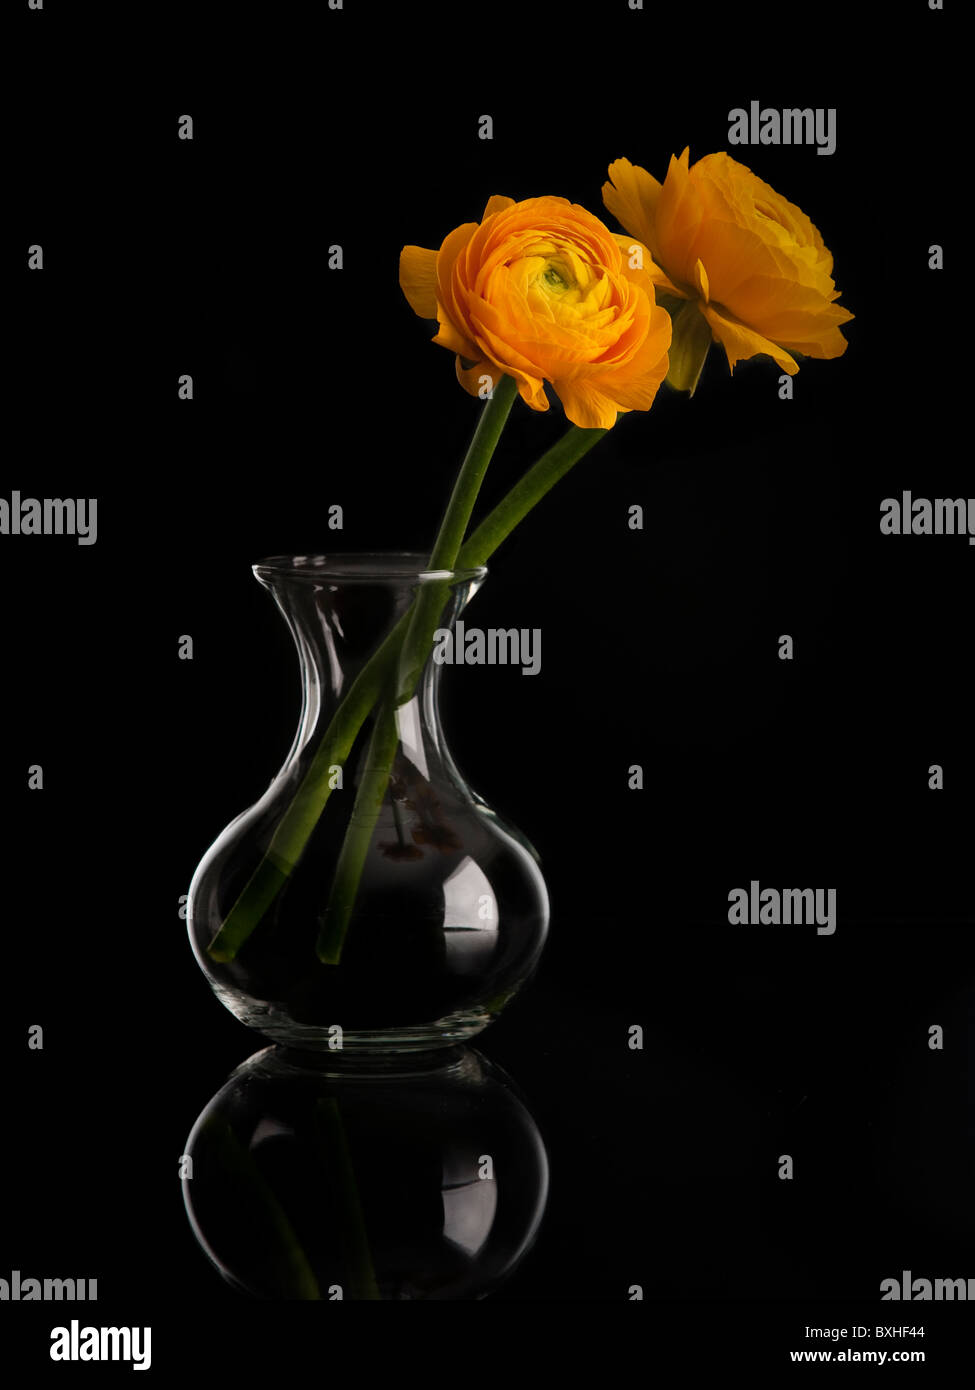 Orange ranunculus flower in a glass vase with white edge with reflection on a black background